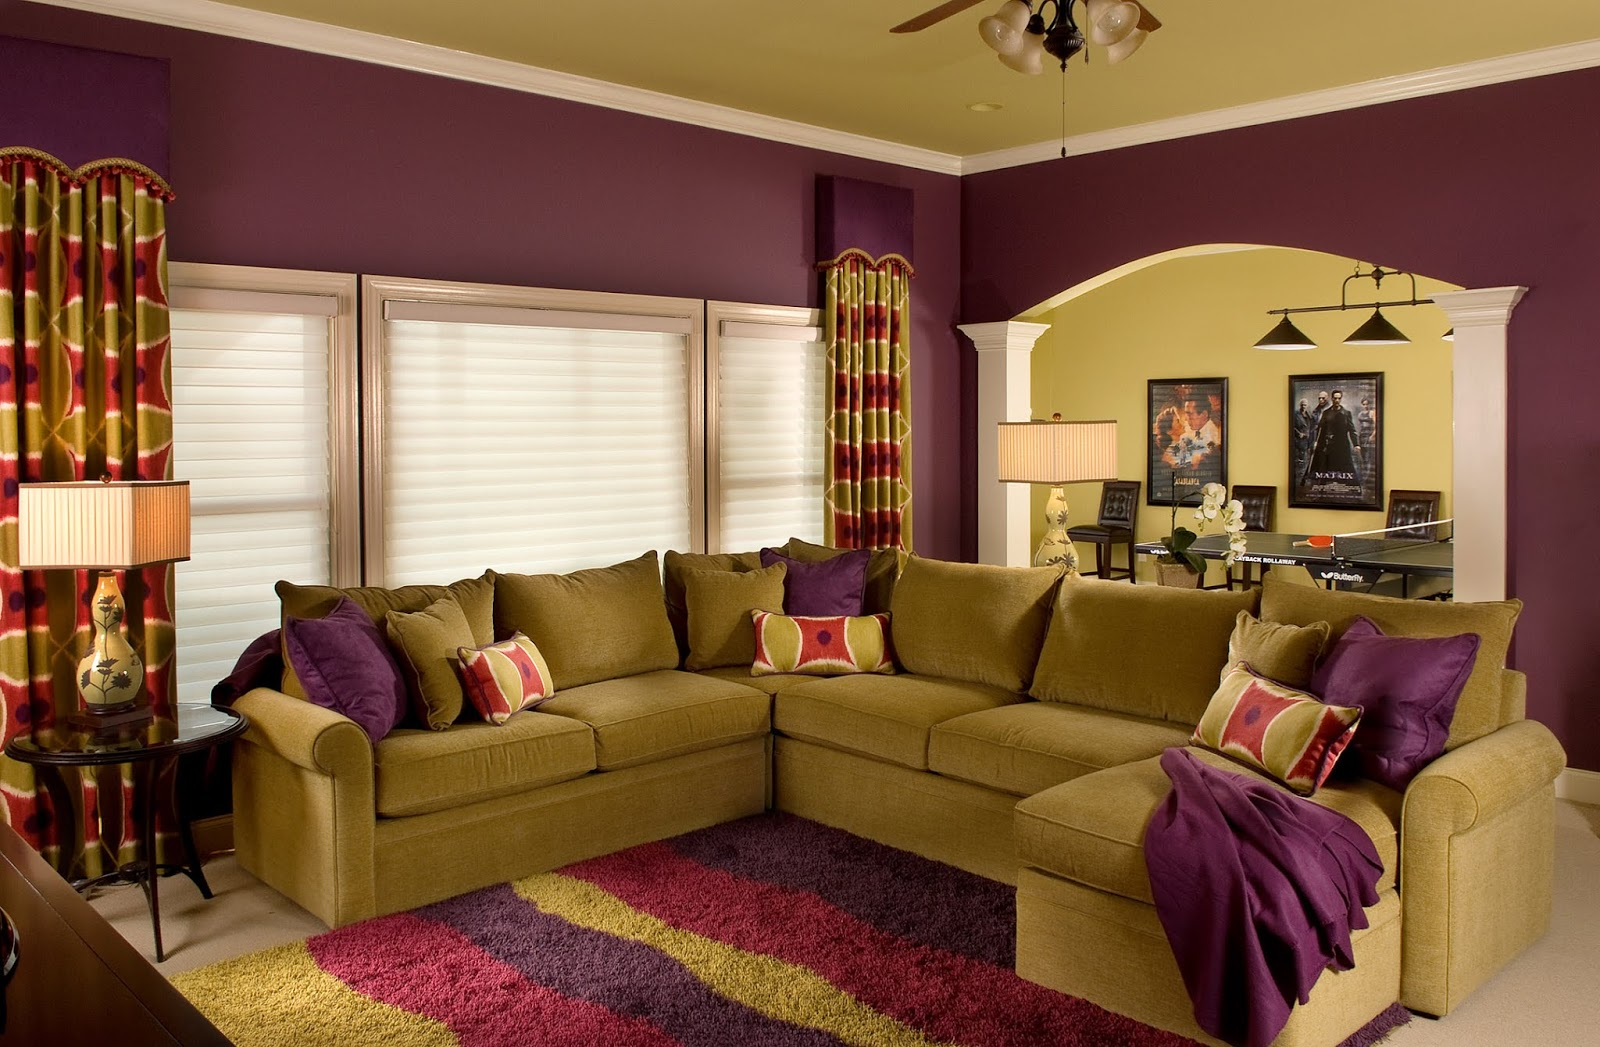 60+ Wall Paint and Decoration Ideas for Living Room